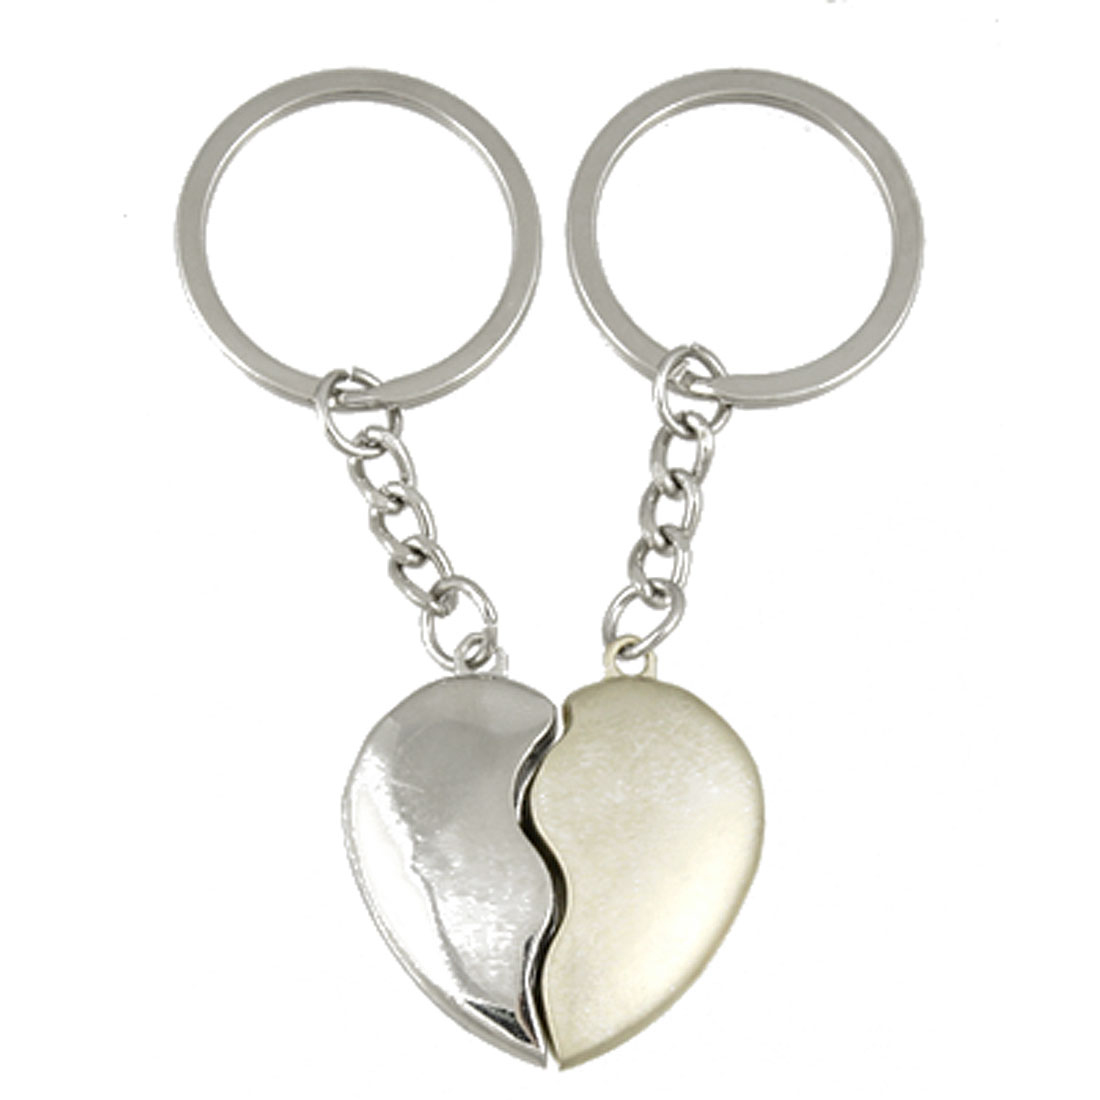 2 Pcs Split Heart Pendant Lovers Alloy Key Ring Chain